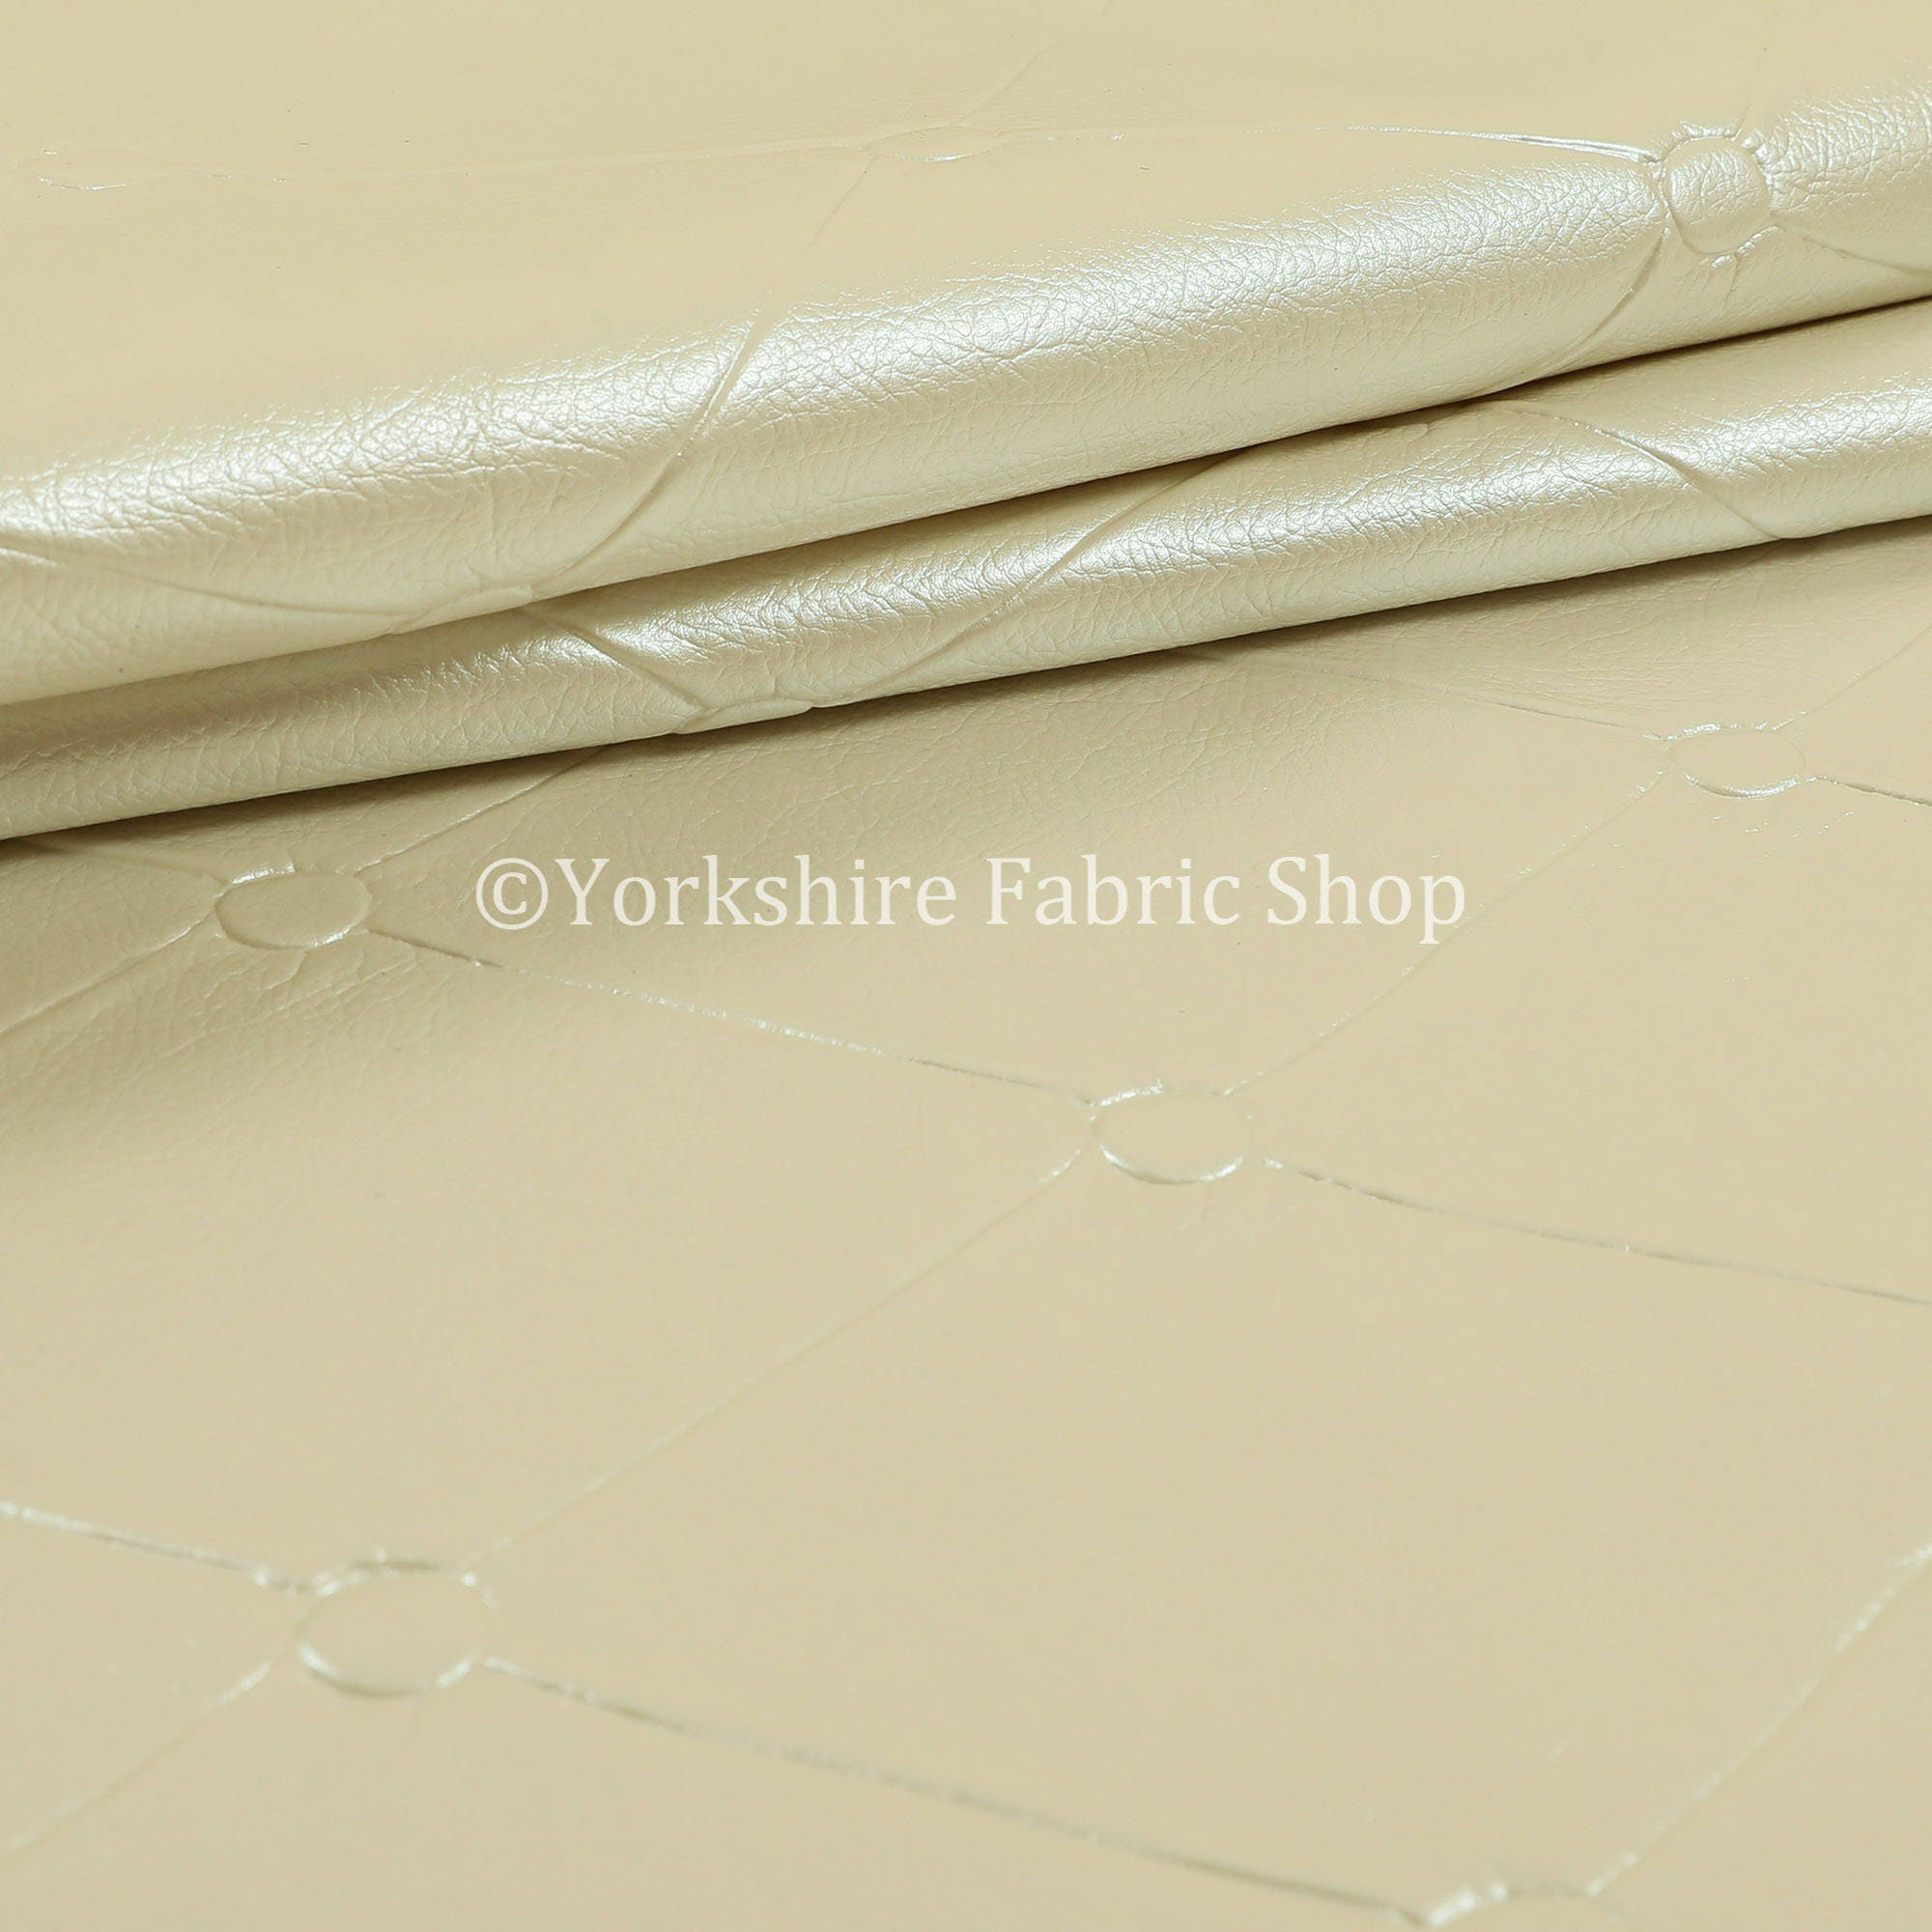 Chesterfield Design White Pearl Faux Leather Upholstery Furniture Seating Fabric - Sold By The 1 Metre, used for sale